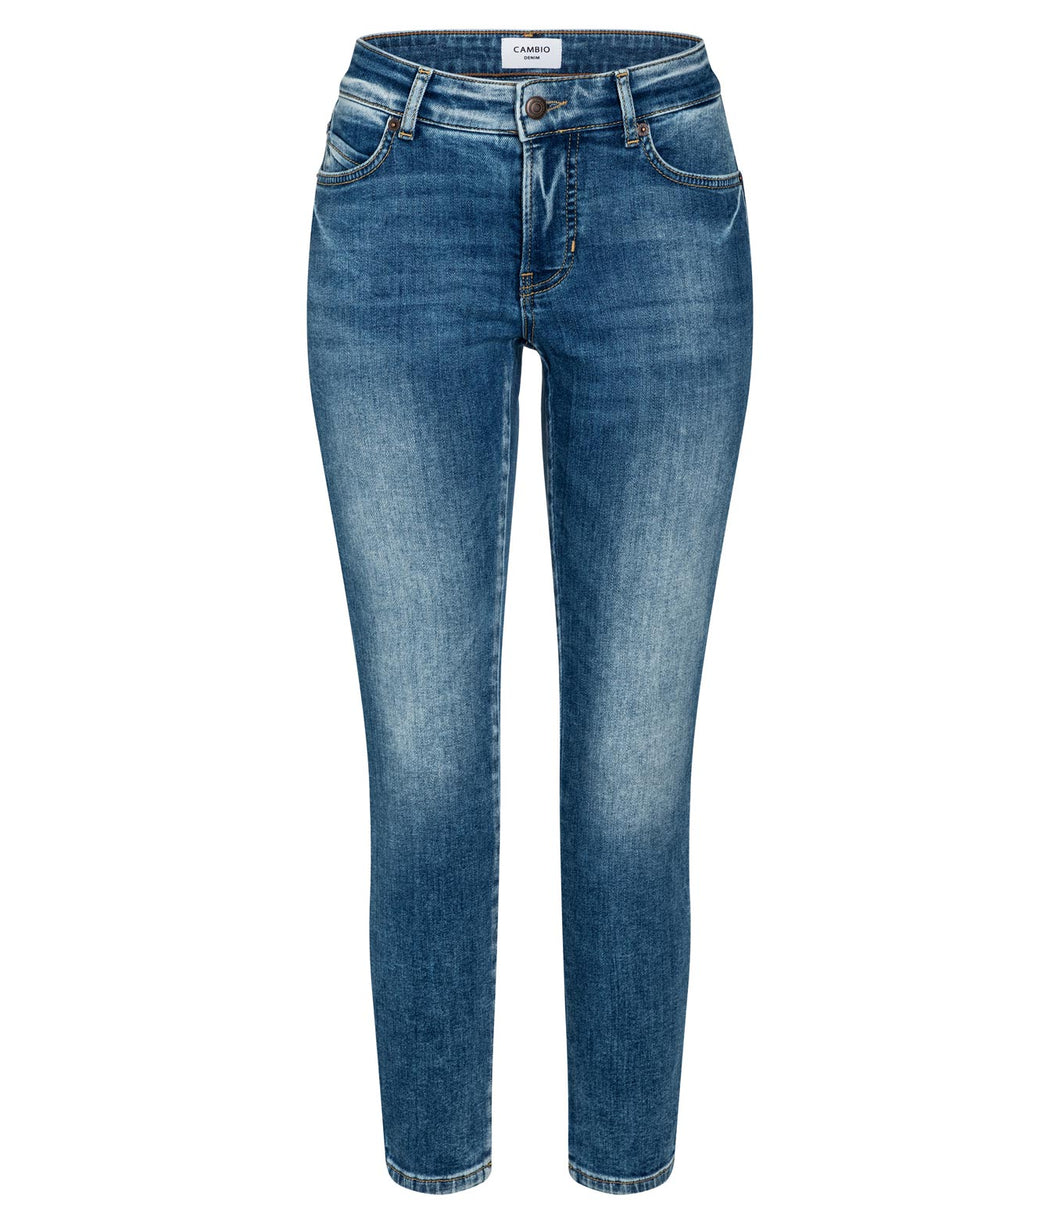 Cambio Jeans Paris Denim